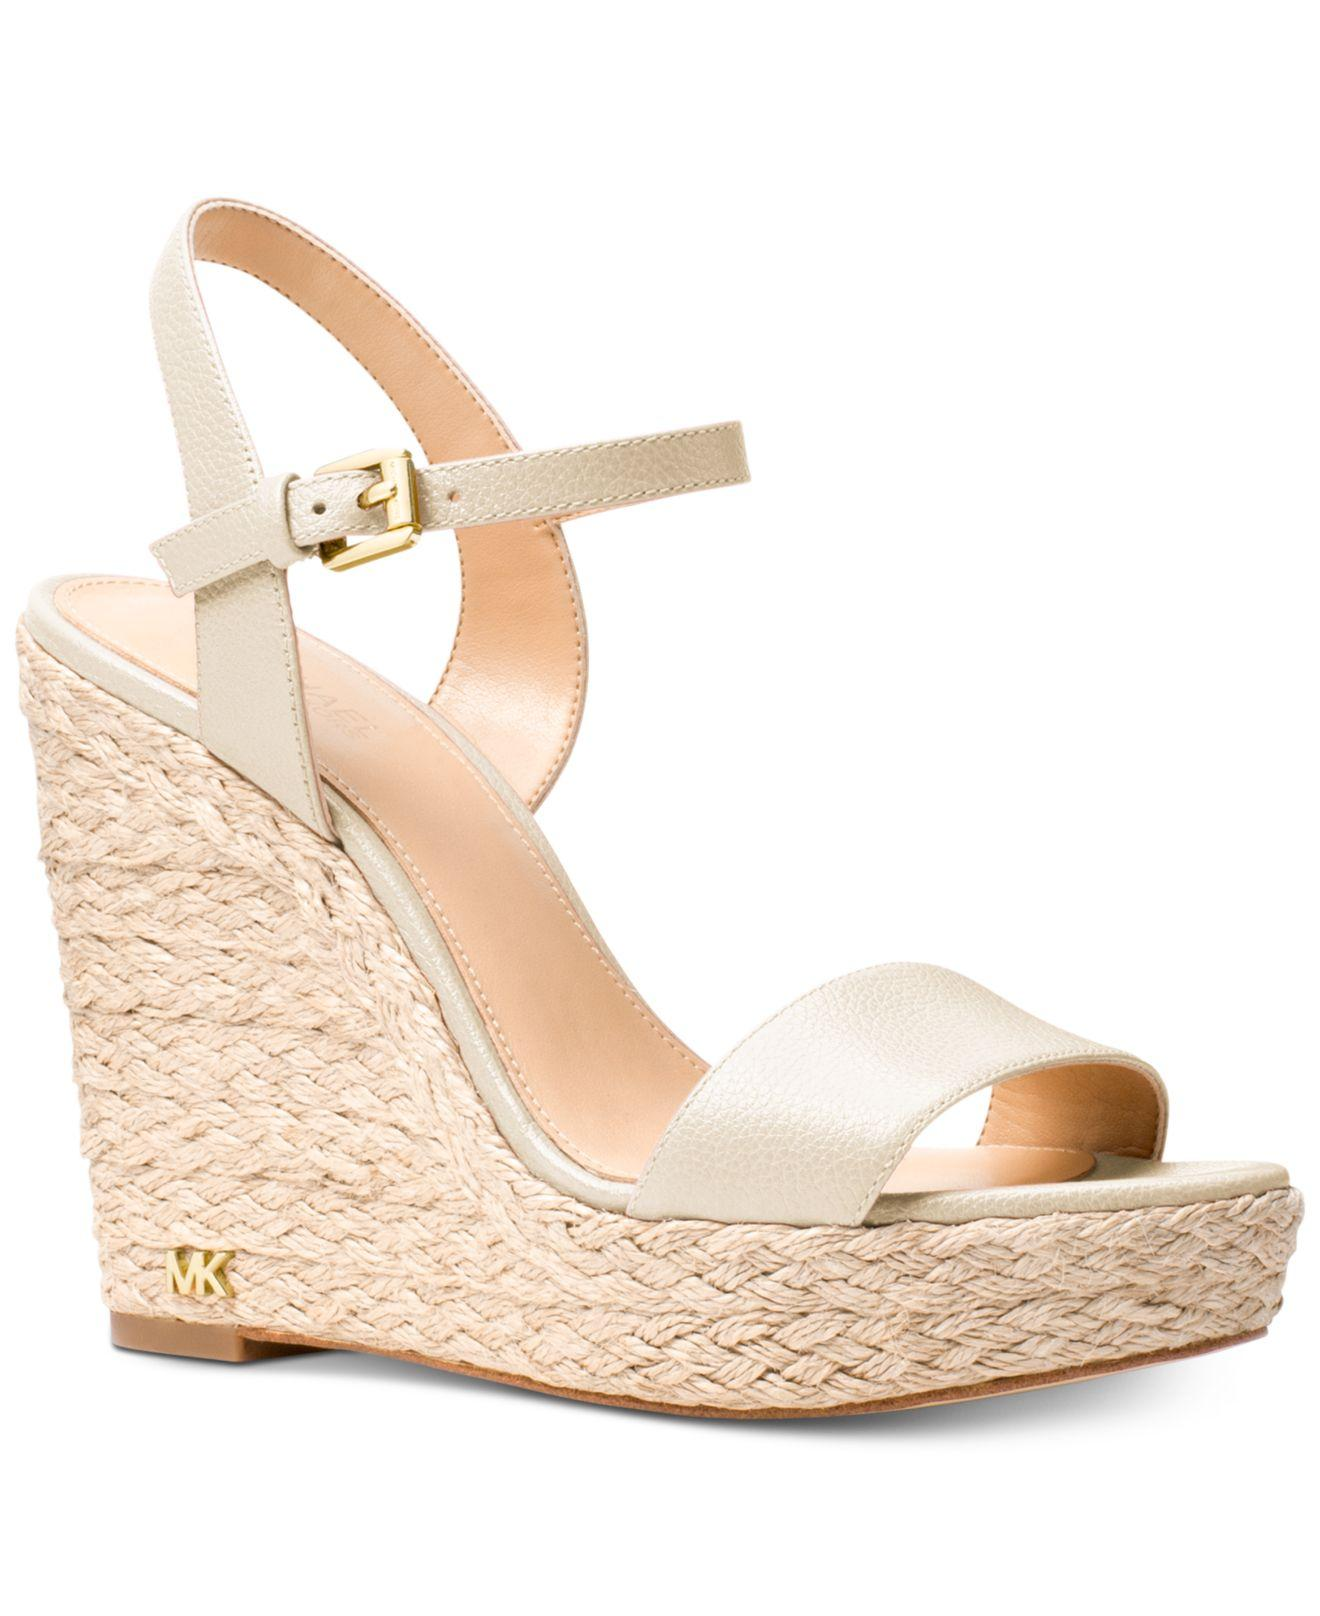 0deb80daabb Michael Kors Michael Jill Espadrille Wedge Sandals in Natural - Lyst